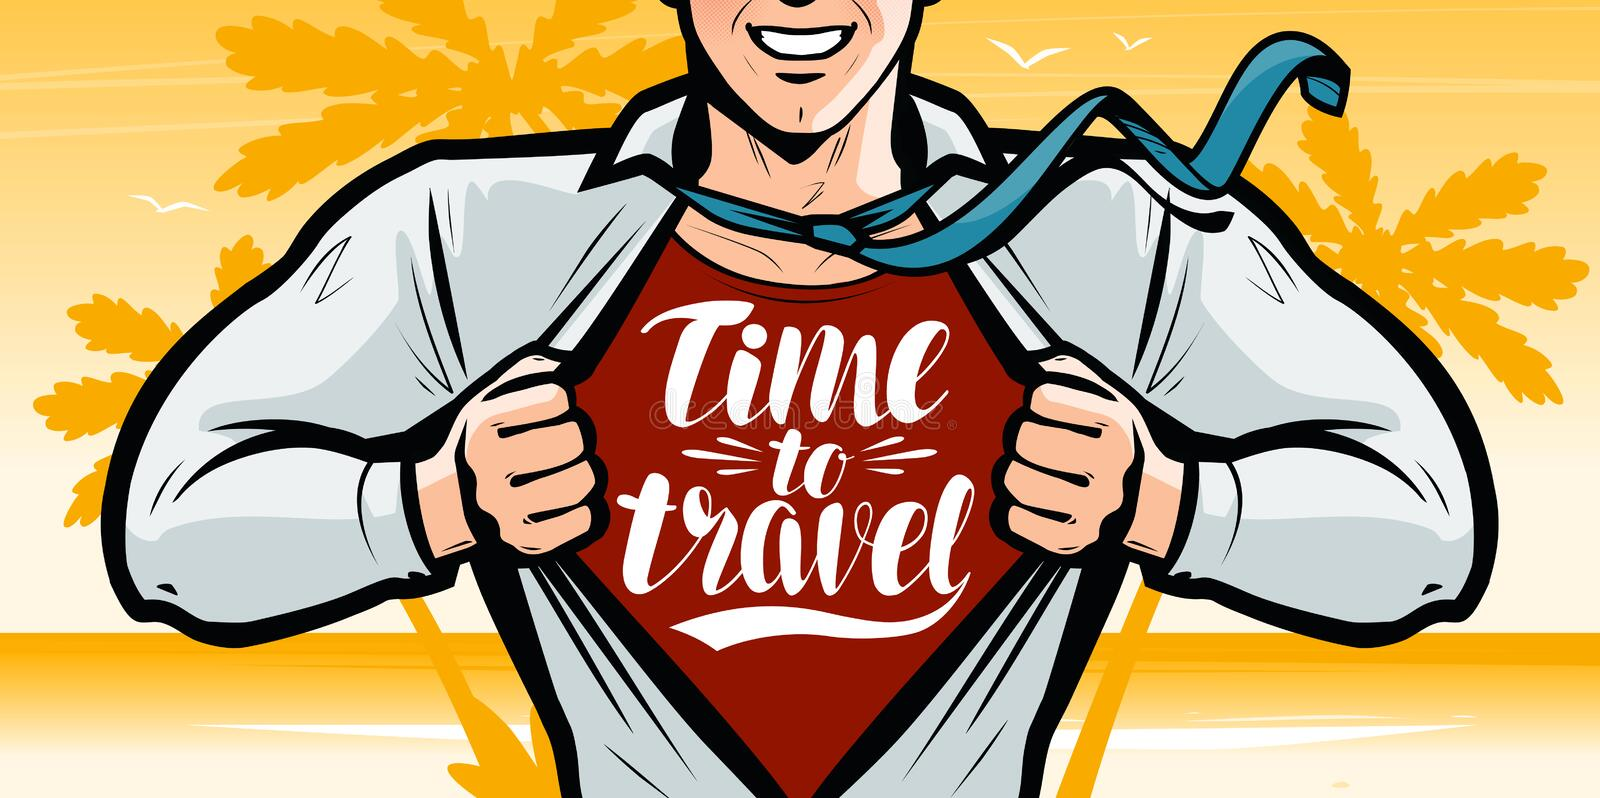 Time to travel, banner. Vacation, journey concept. Vector illustration in style comic pop art royalty free illustration